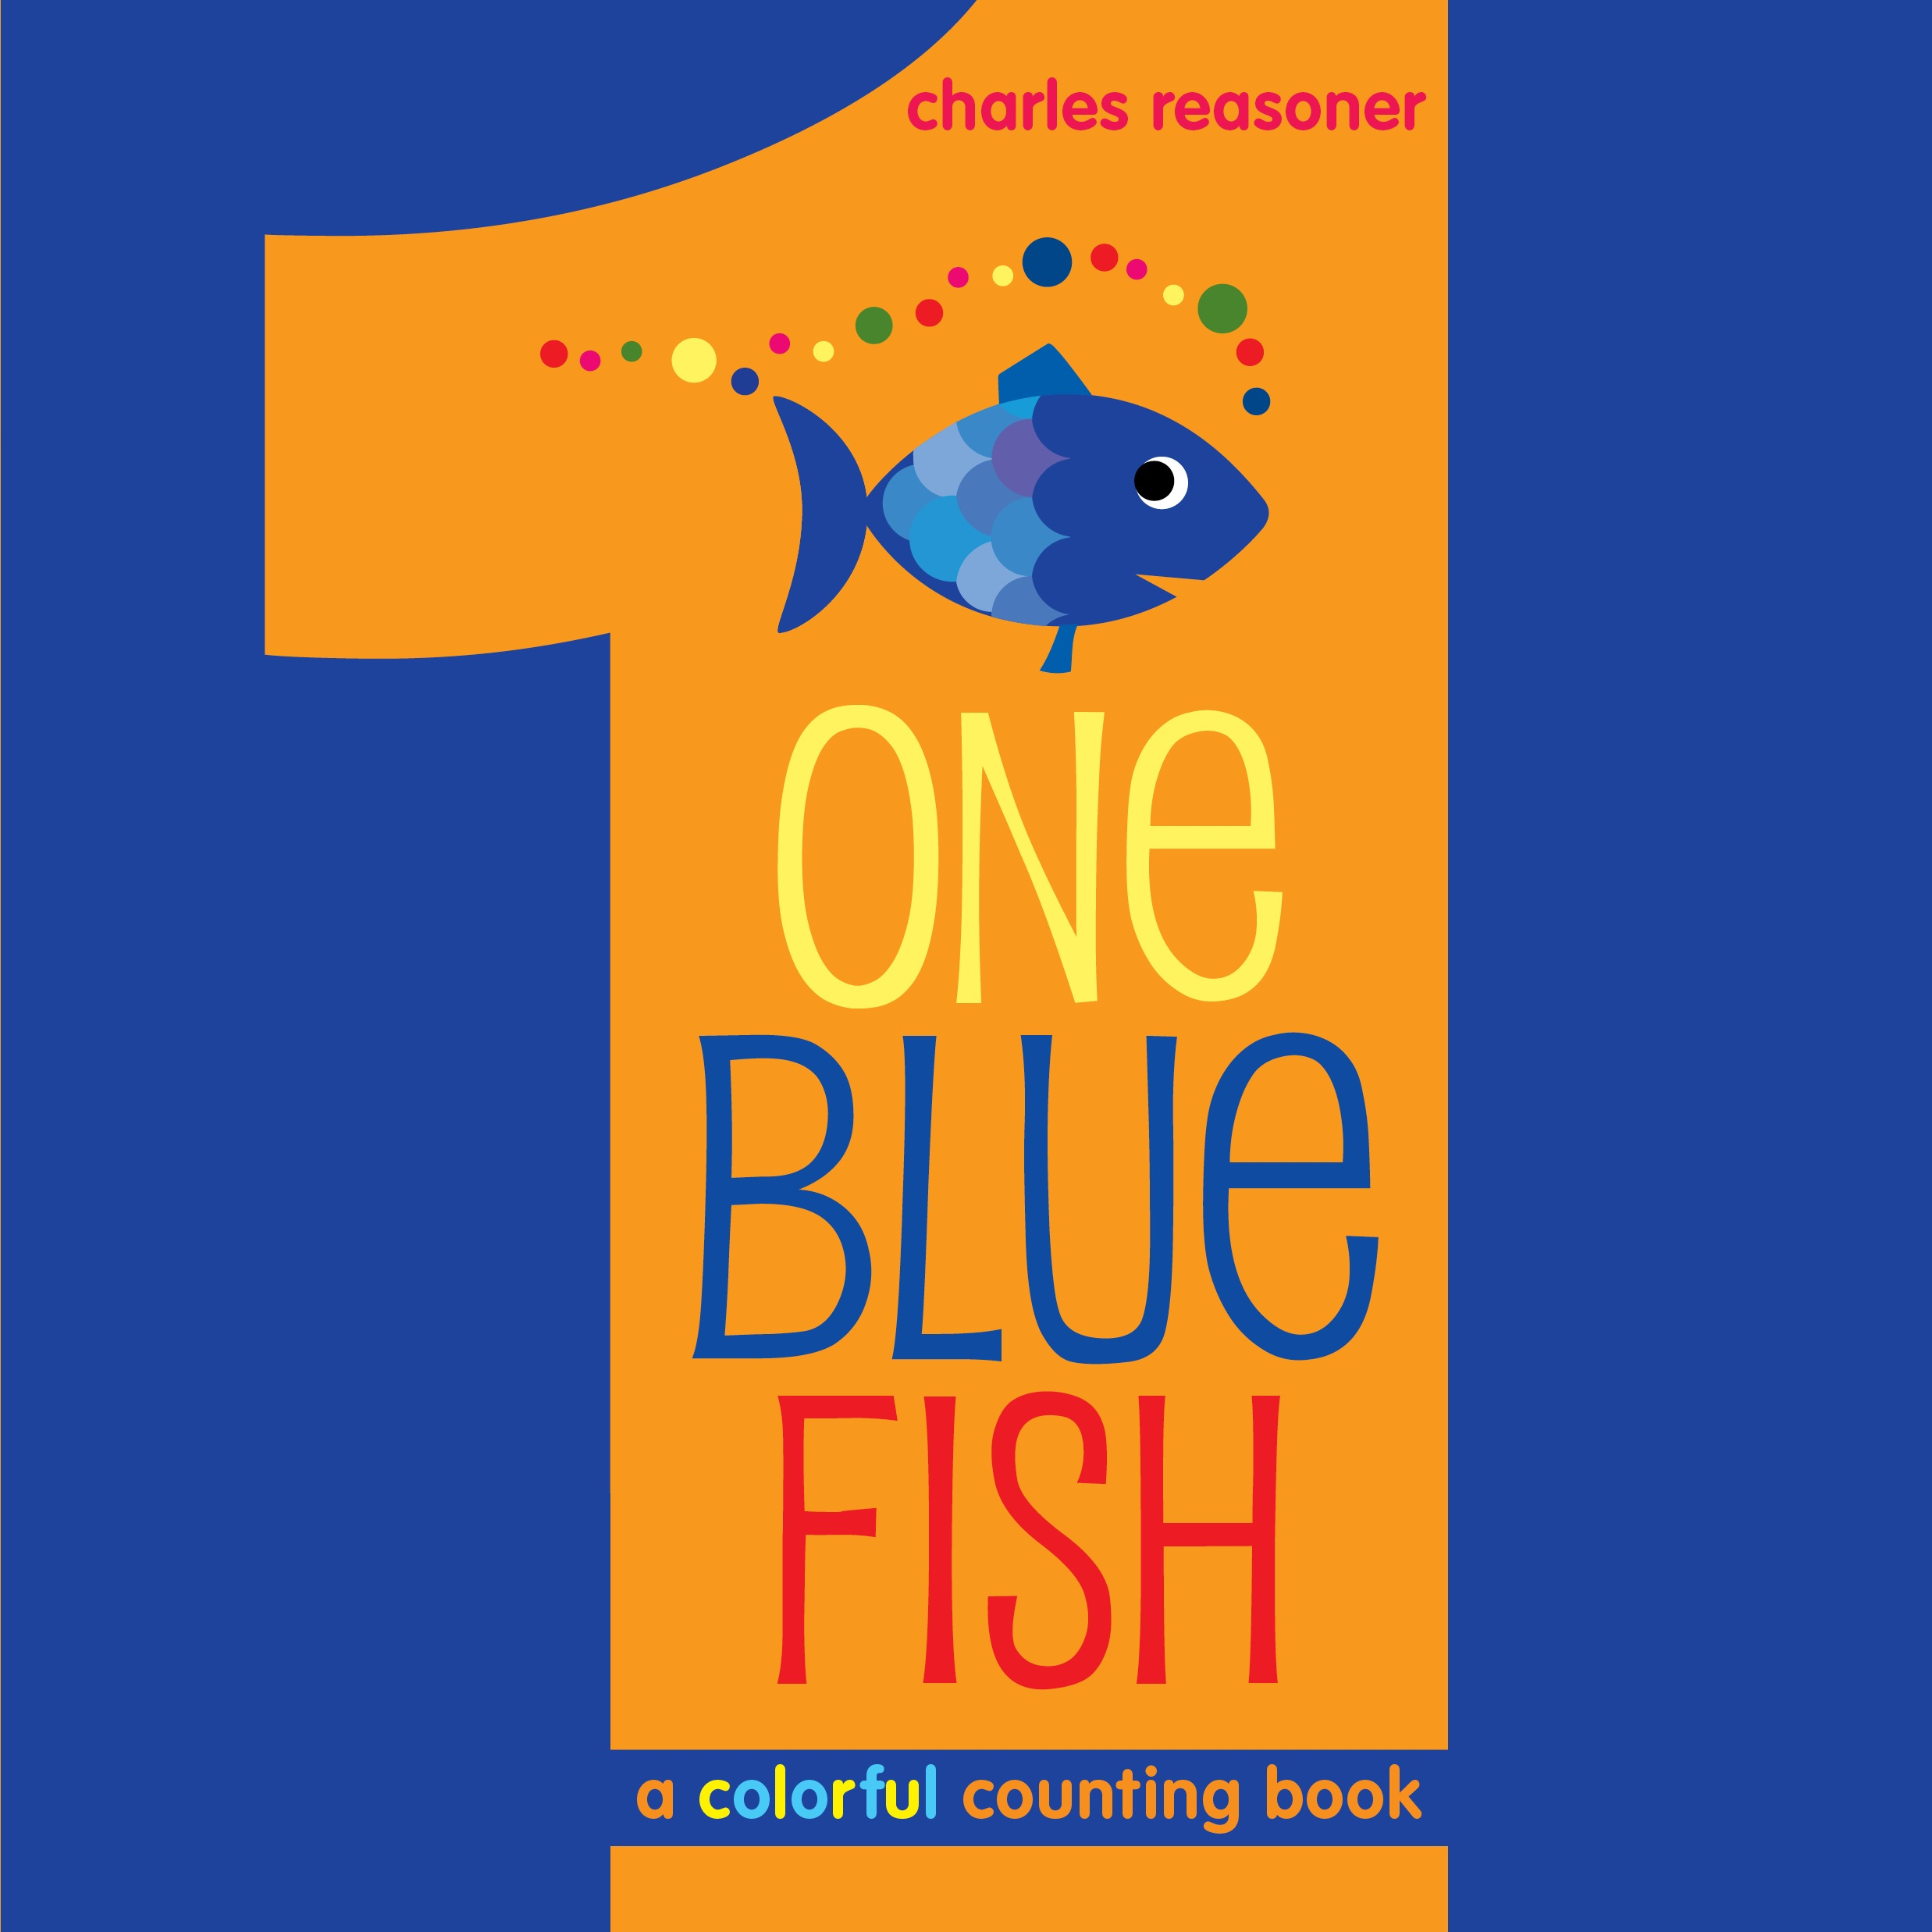 Charles reasoner official publisher page simon schuster for Blue fish book